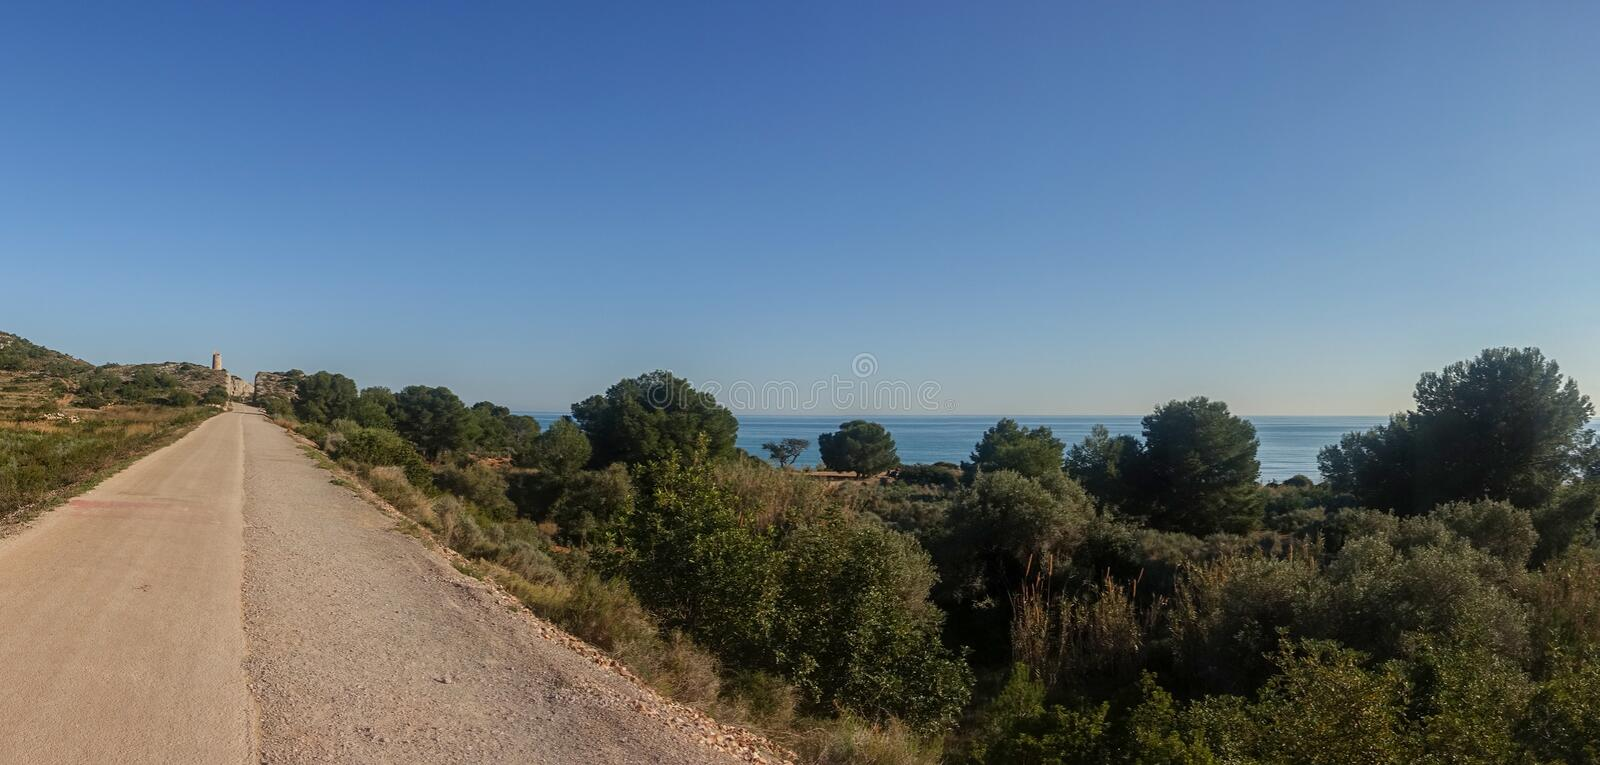 The green way of Benicassim and oropesa del mar, Costa azahar. Spain royalty free stock photo